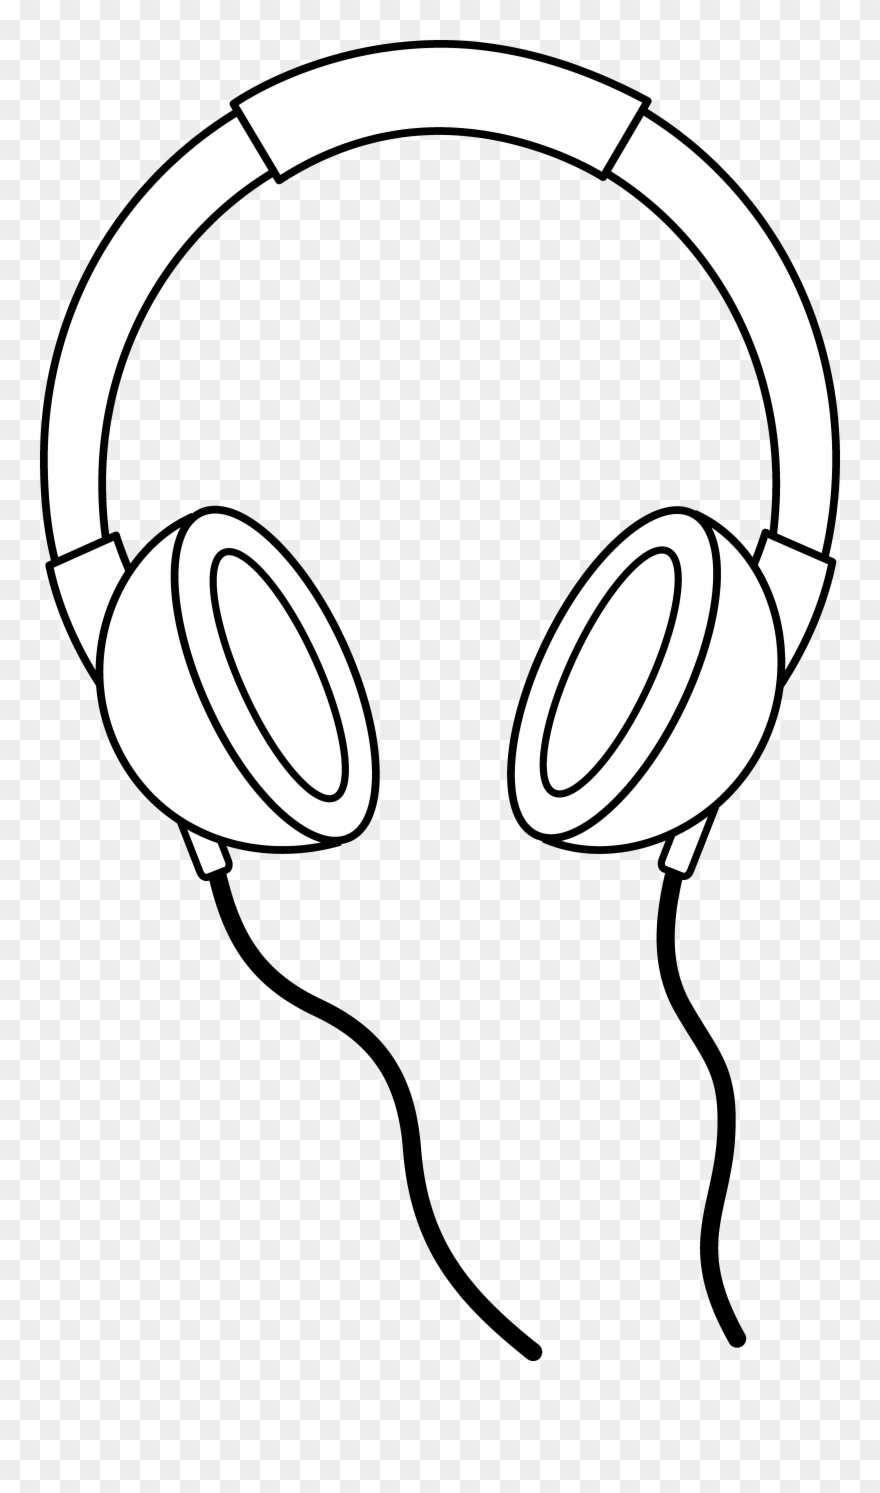 Headphones Line Art.